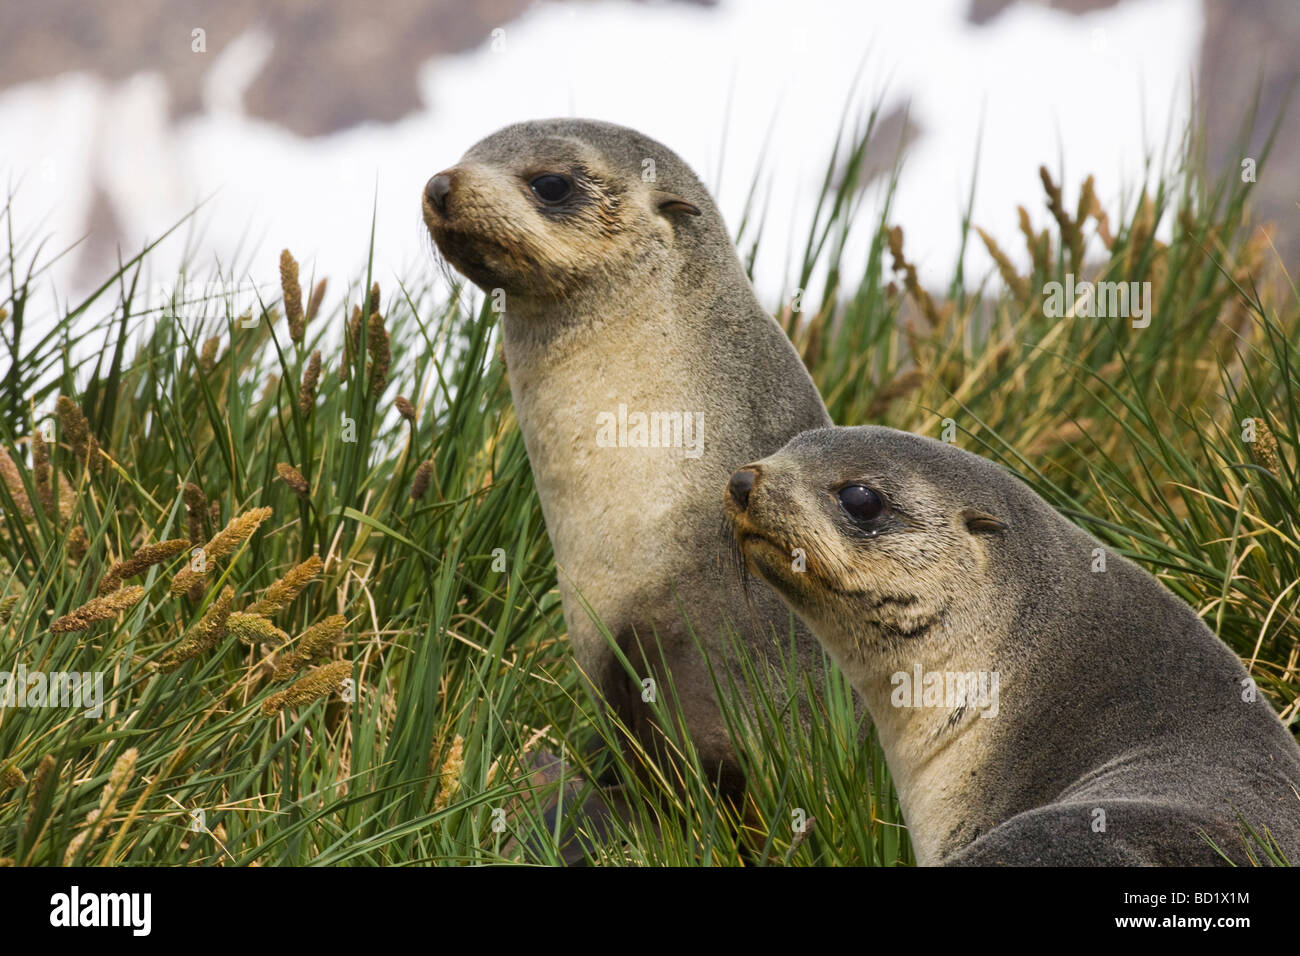 Antarctic fur seal pups Arctocephalus gazella at Gold Harbour South Georgia Antarctica - Stock Image